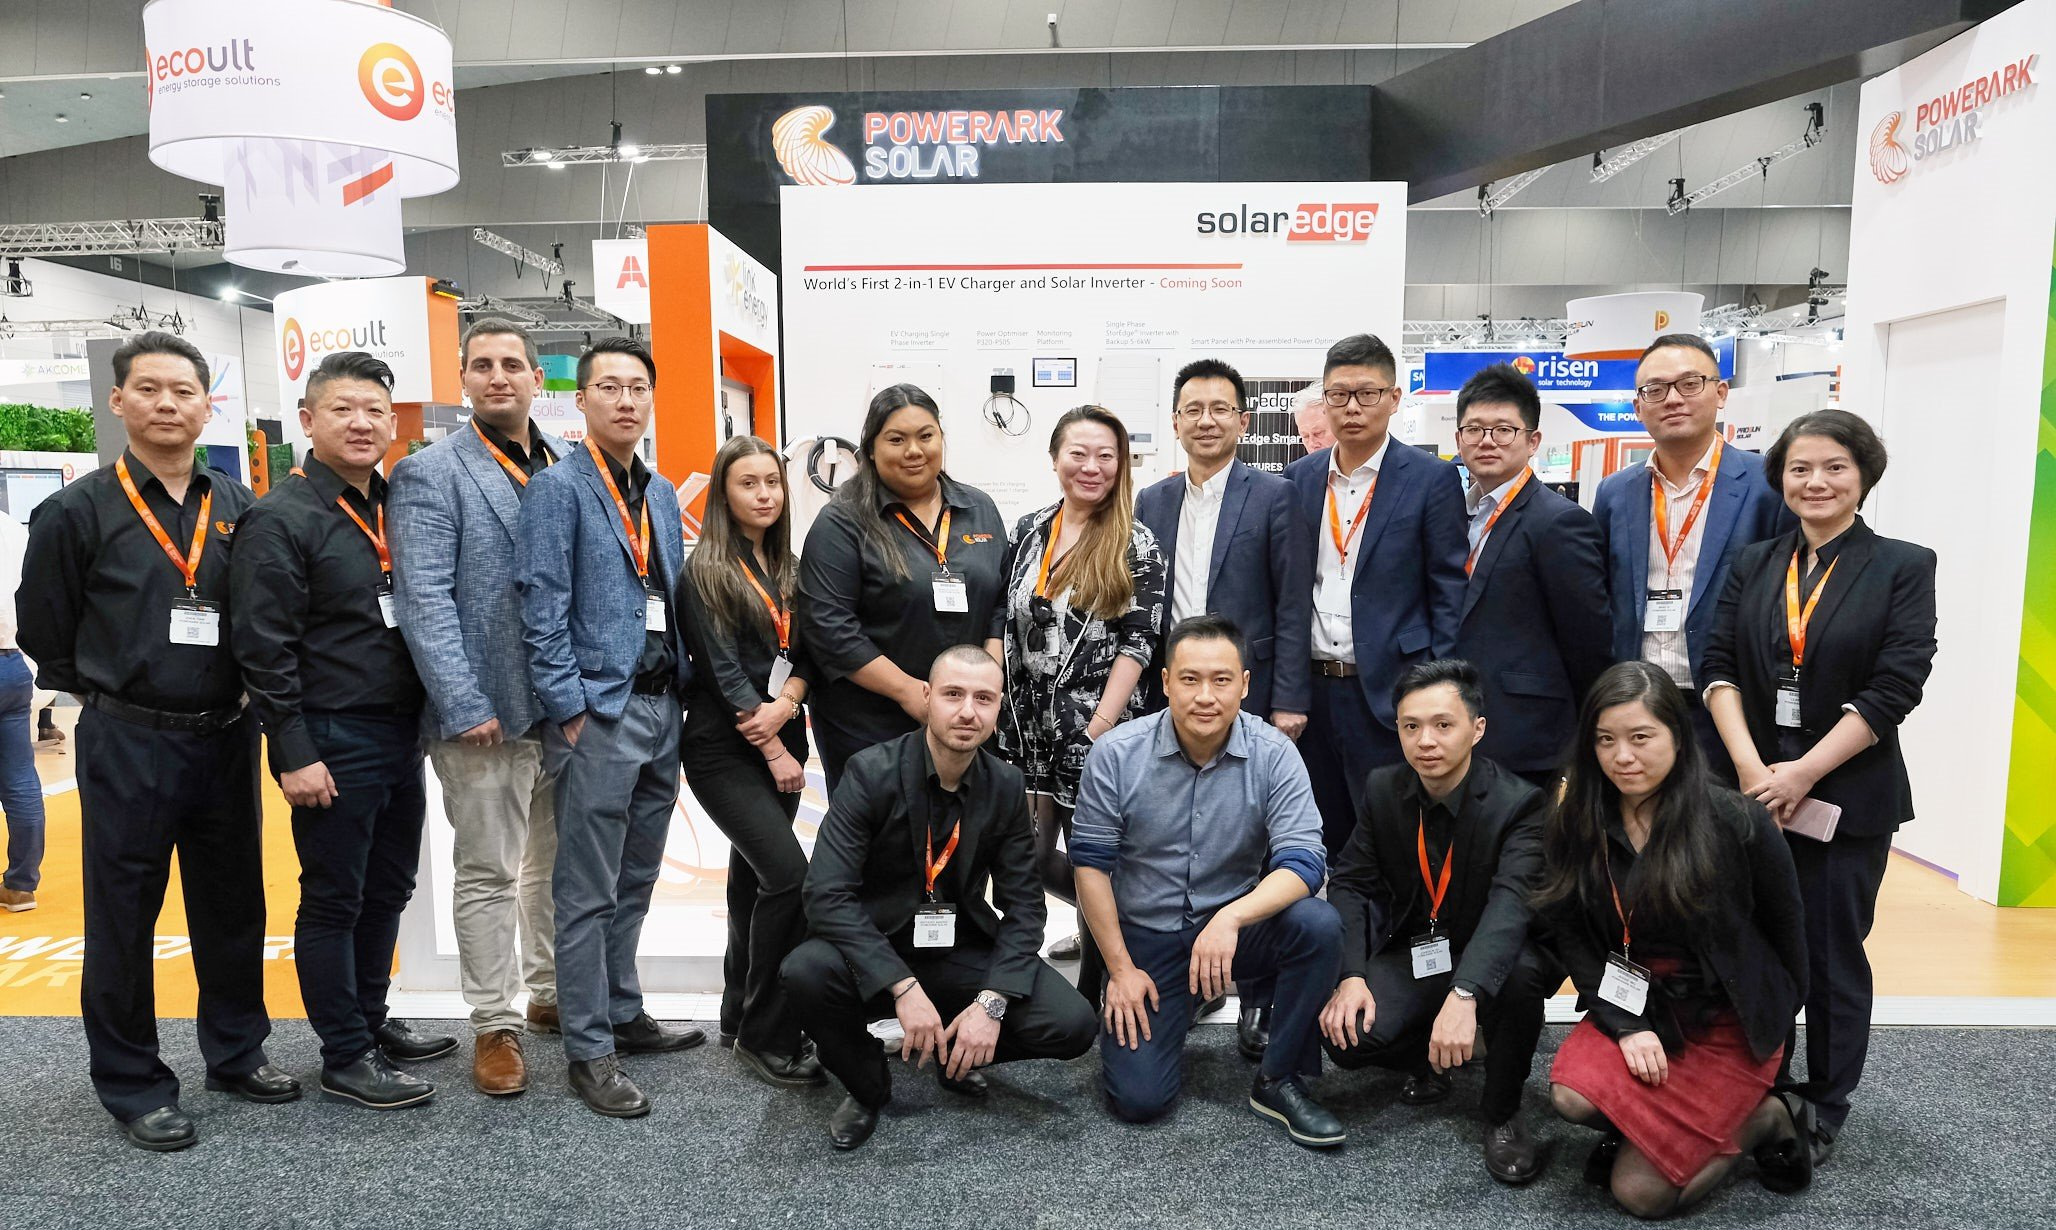 Powerark Solar at All-Energy 2019